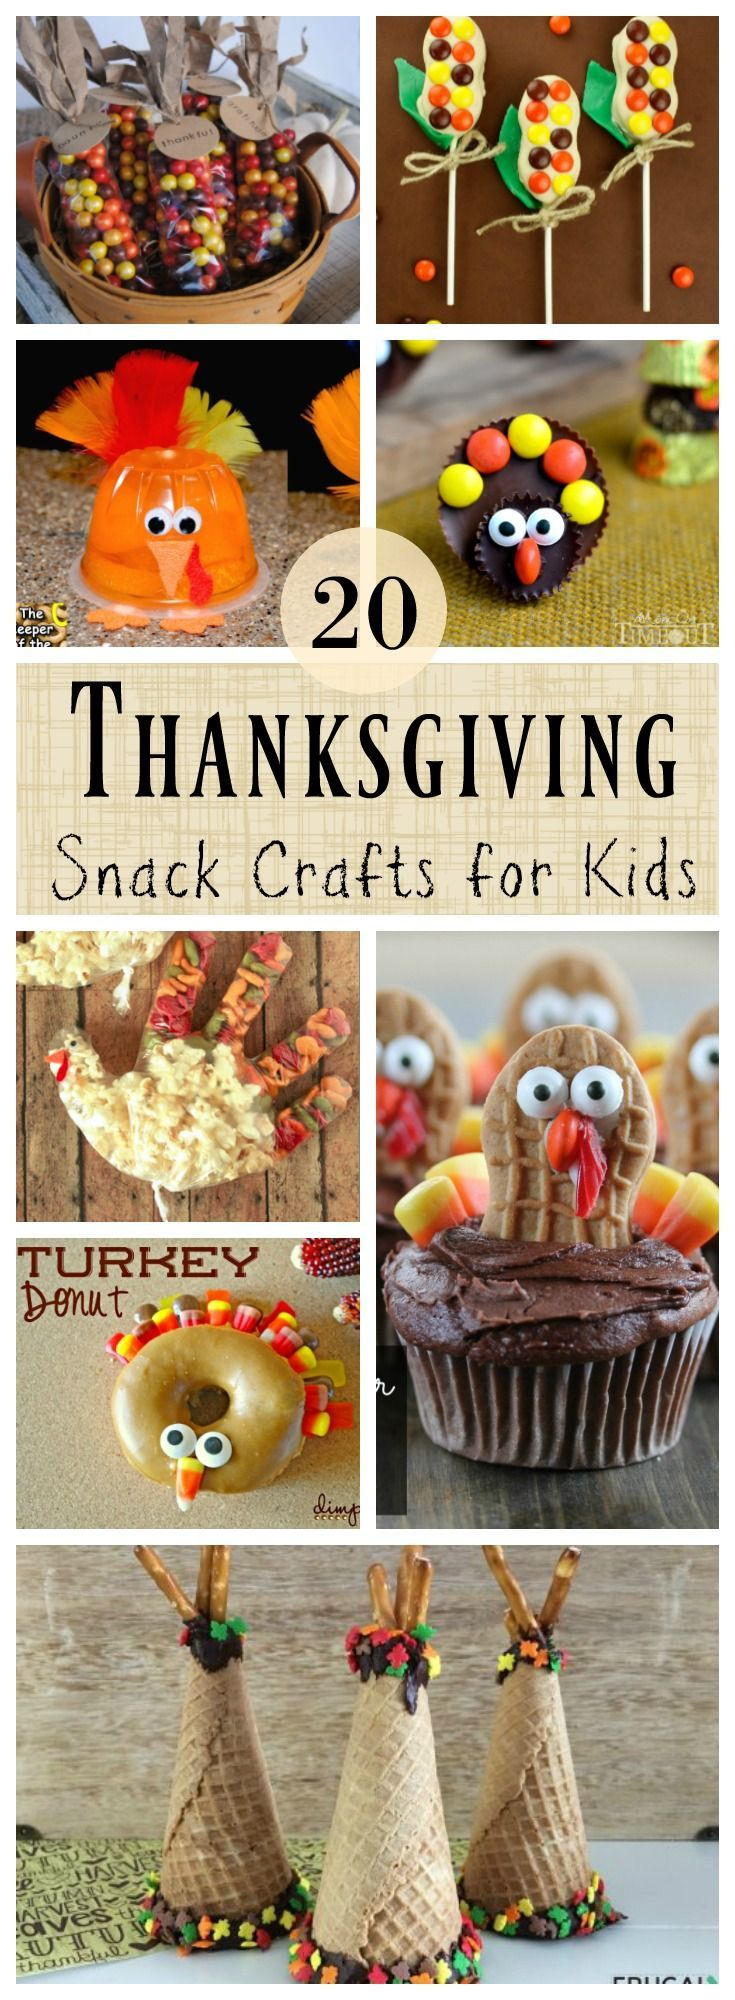 20 Fun and Deeee lish Thanksgiving themed crafts